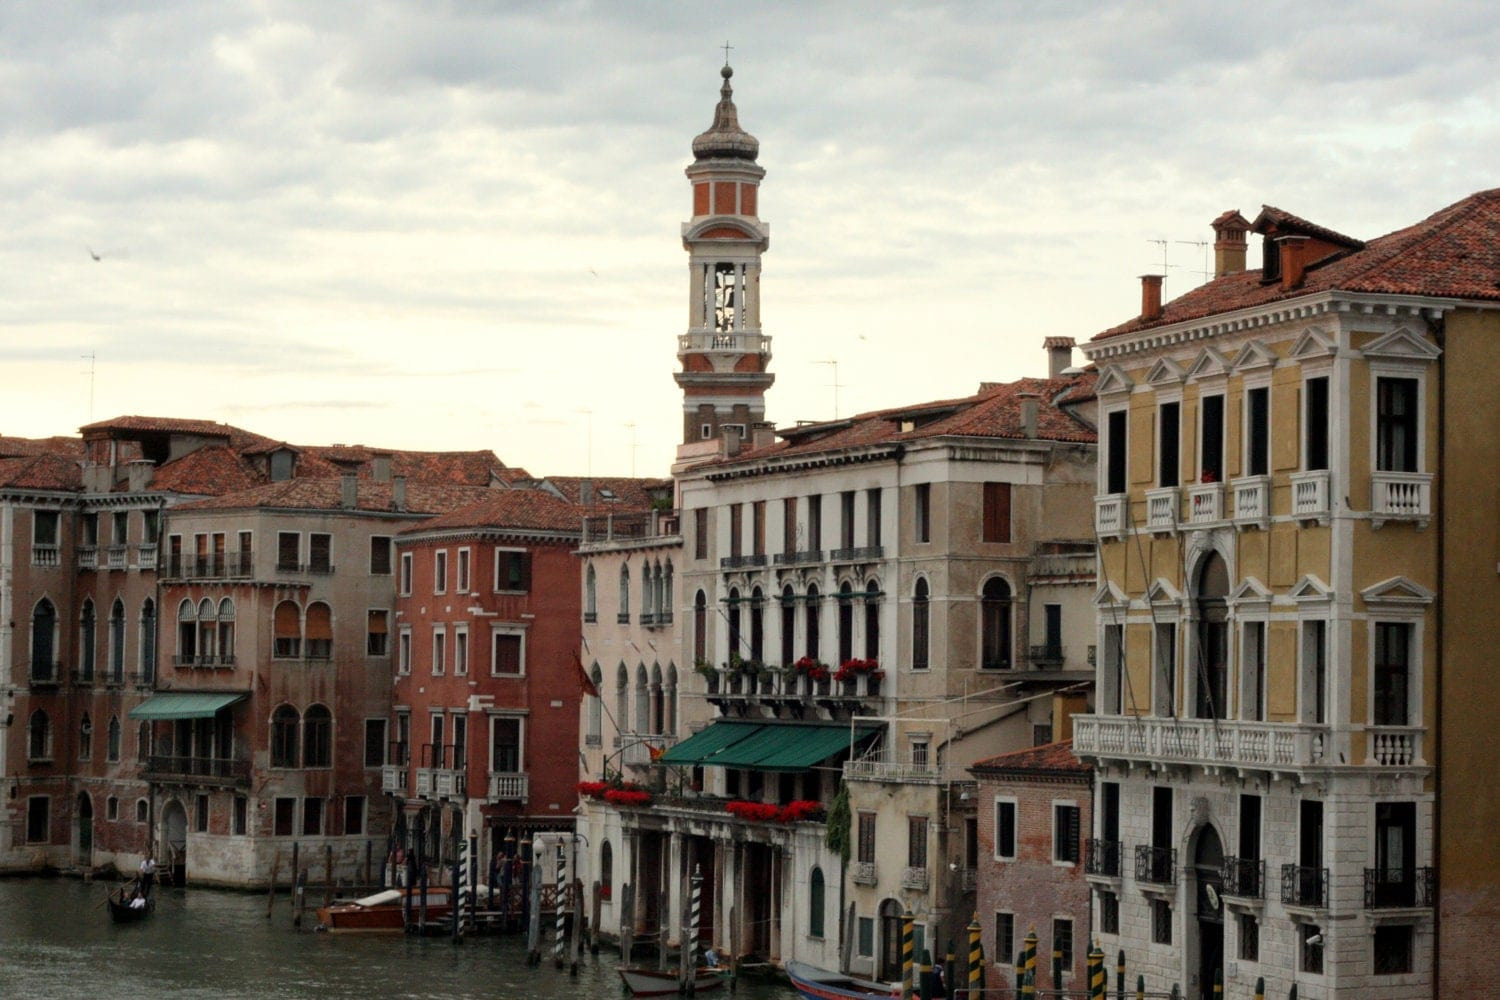 Venice, Italy Spire - 8x10 Print Matted to 11x14